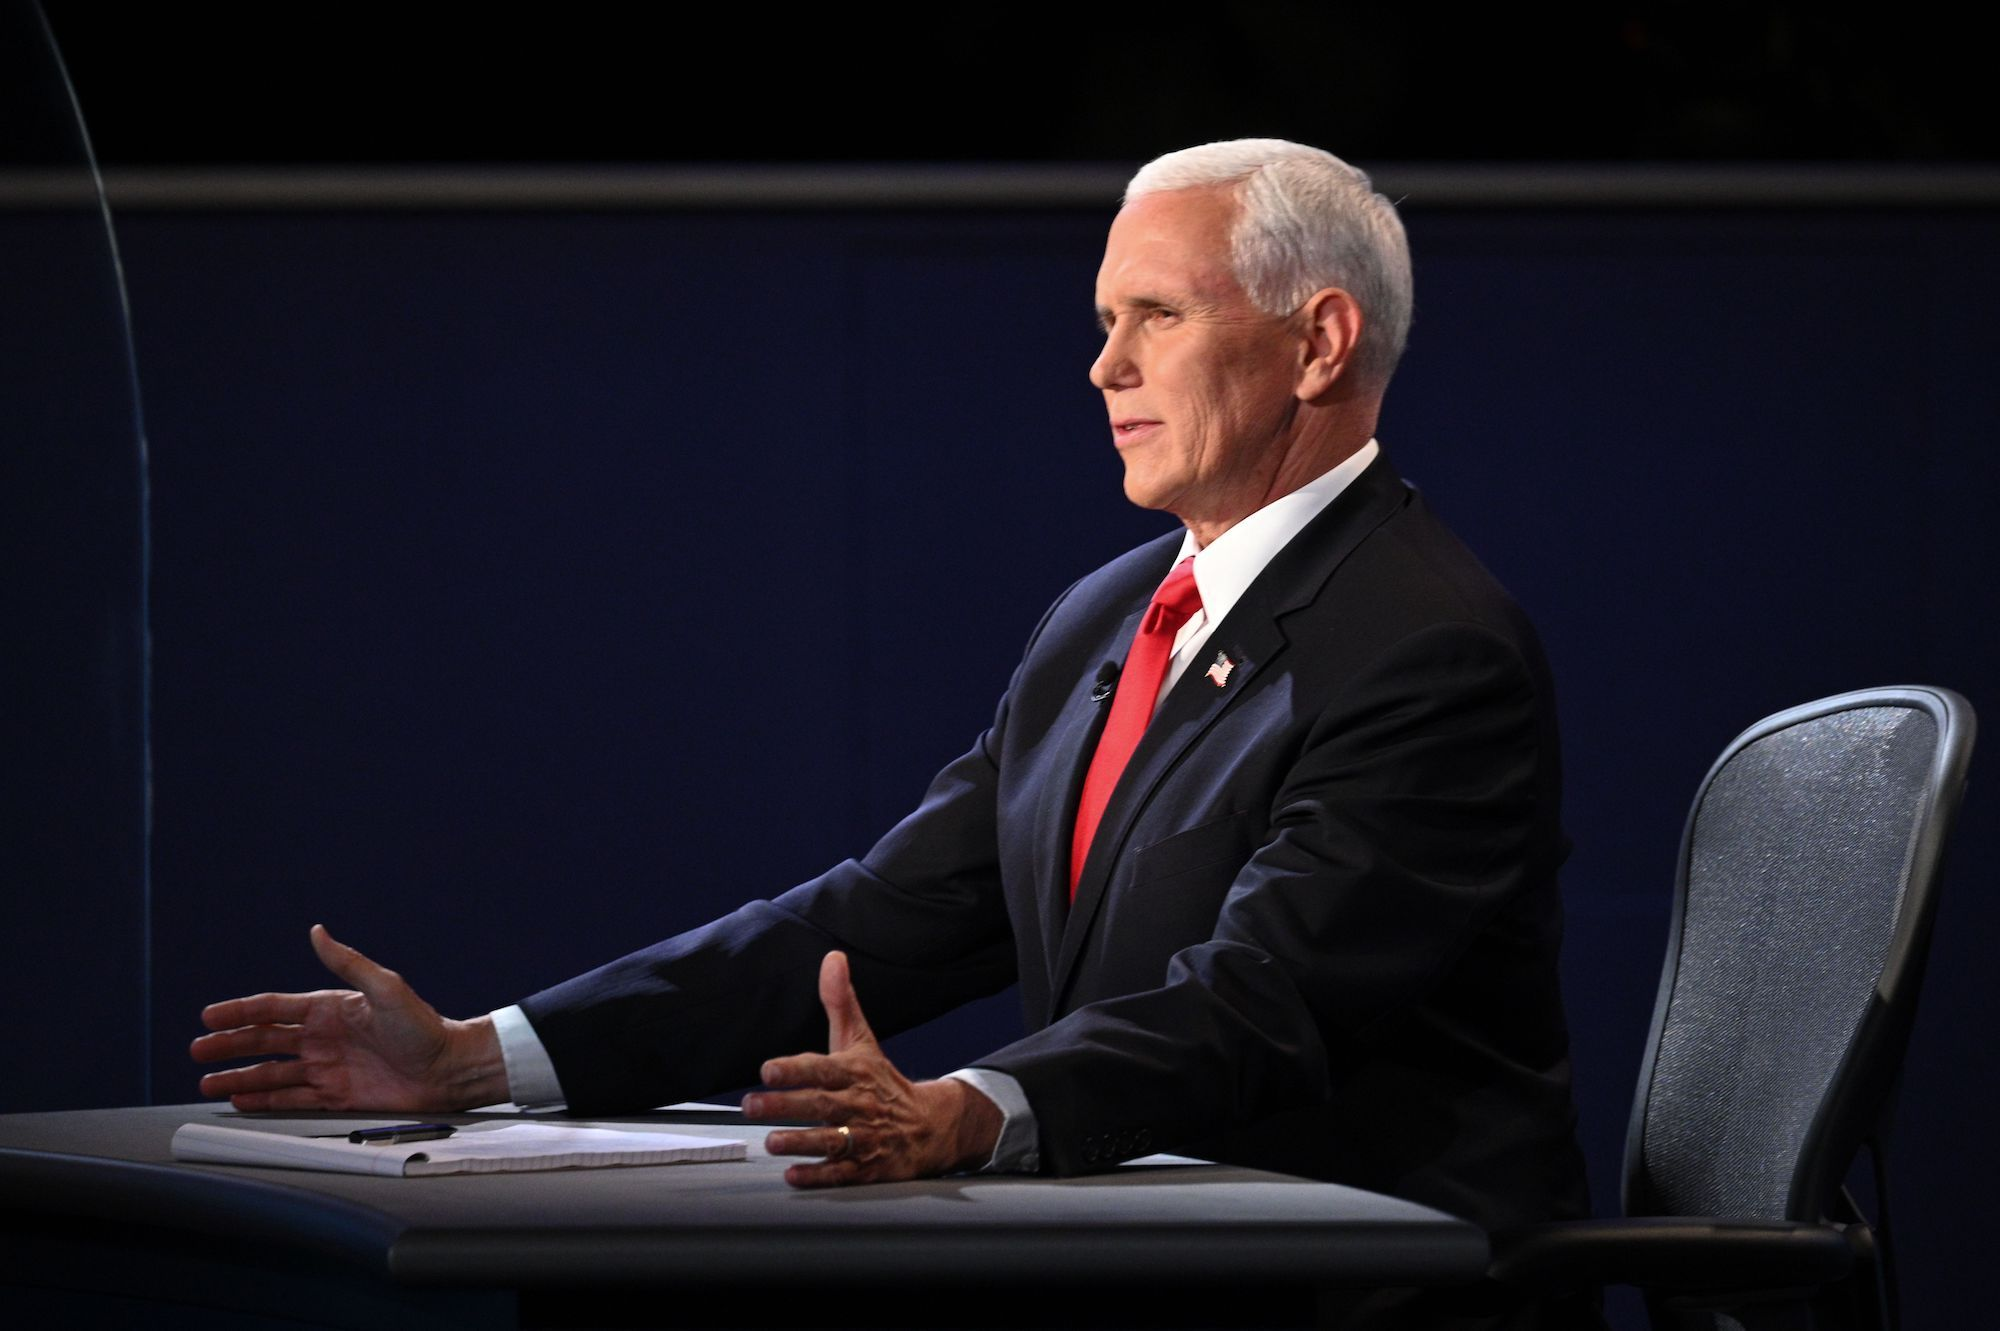 The Climate Portion of the Vice-Presidential Debate Was Incredibly Depressing